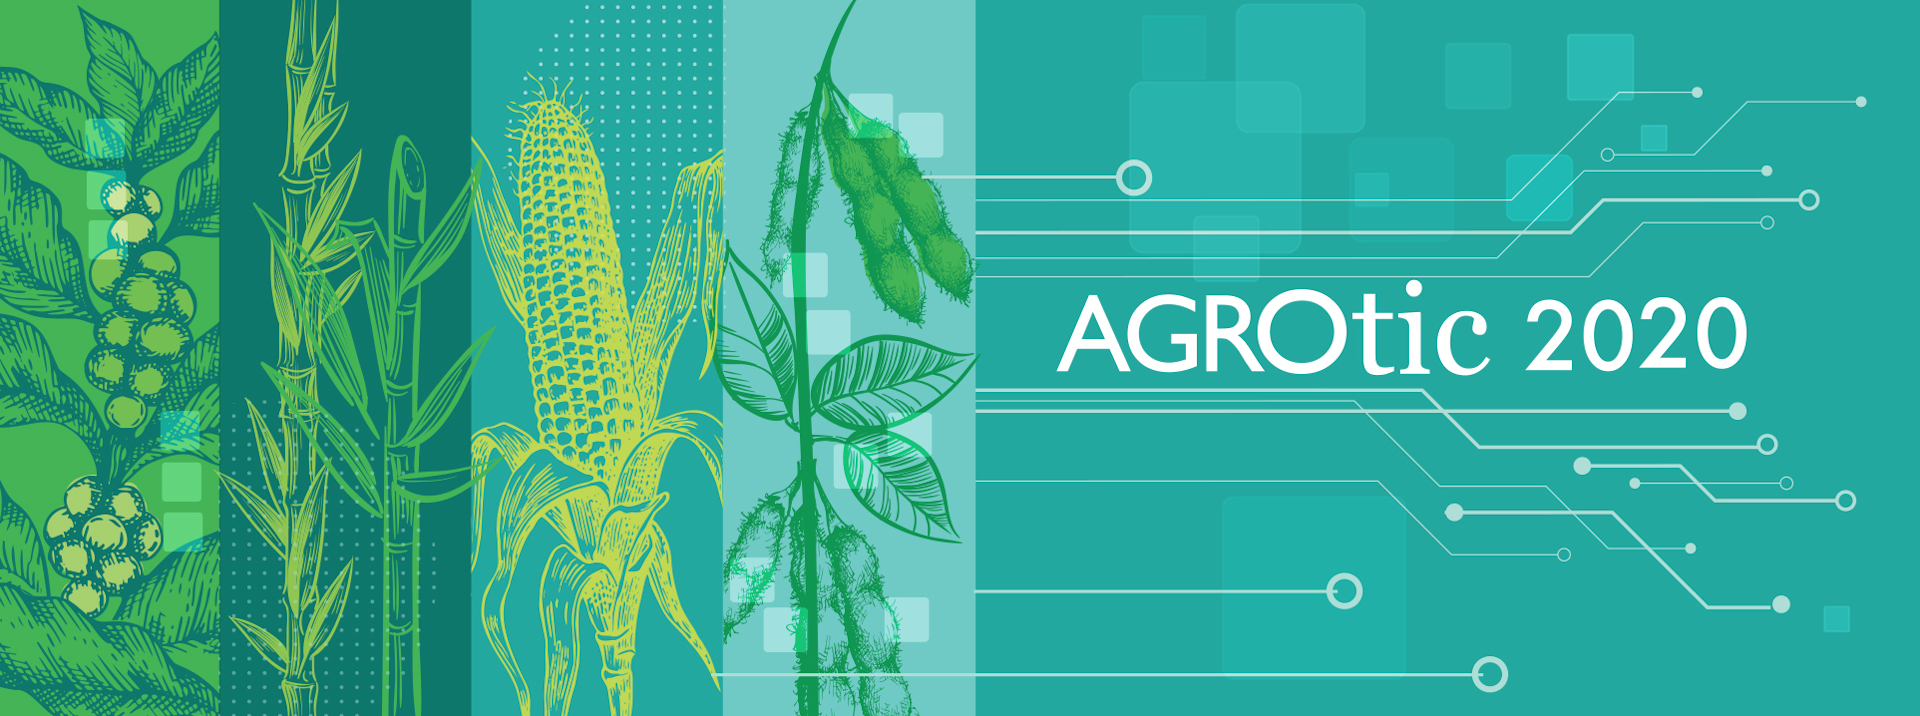 AGROTIC2020_2